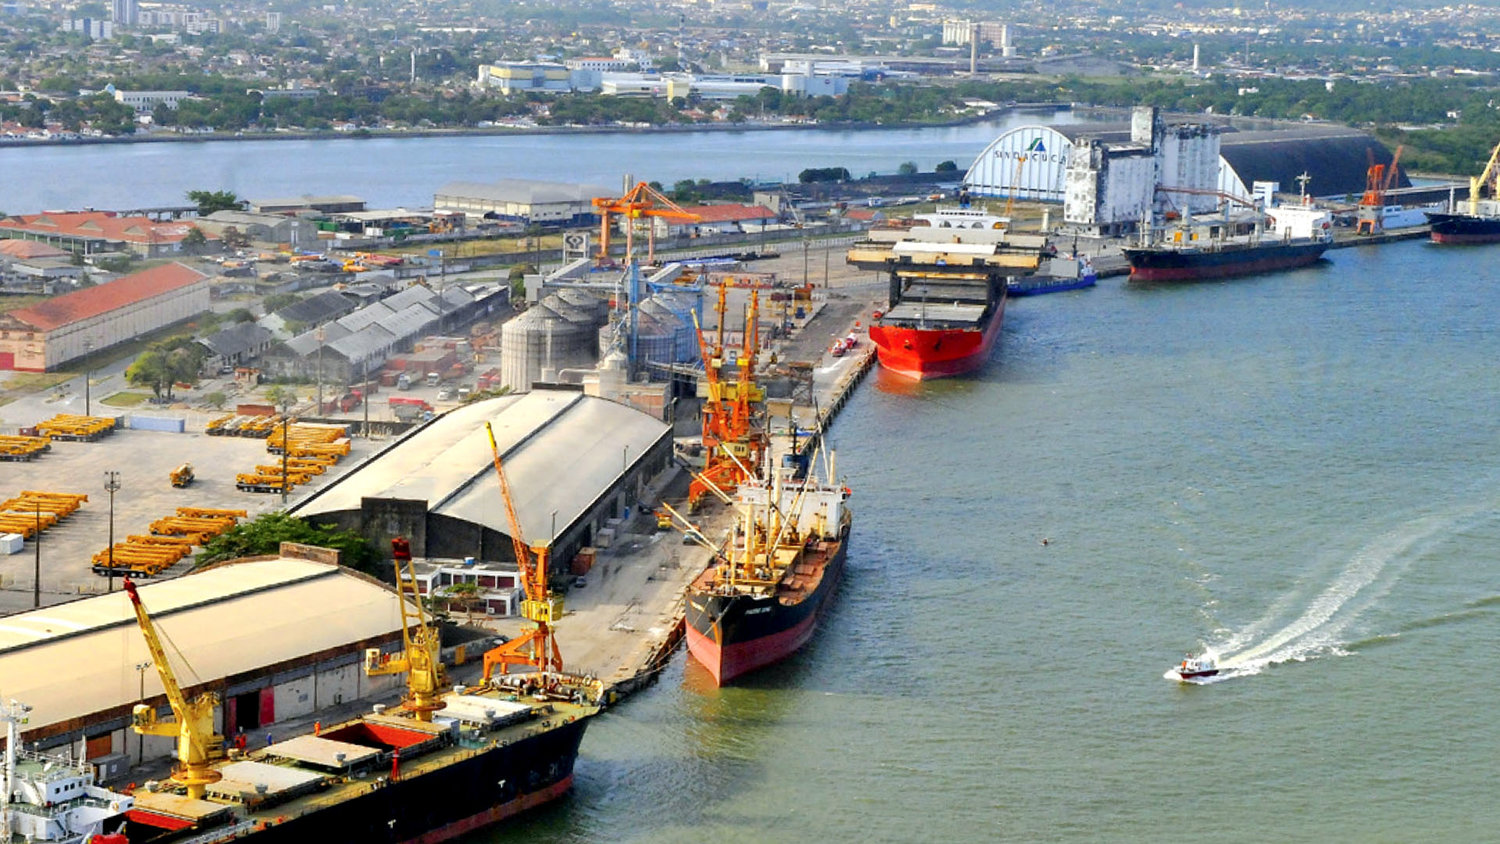 Aerial view of the Recife Port (PE)